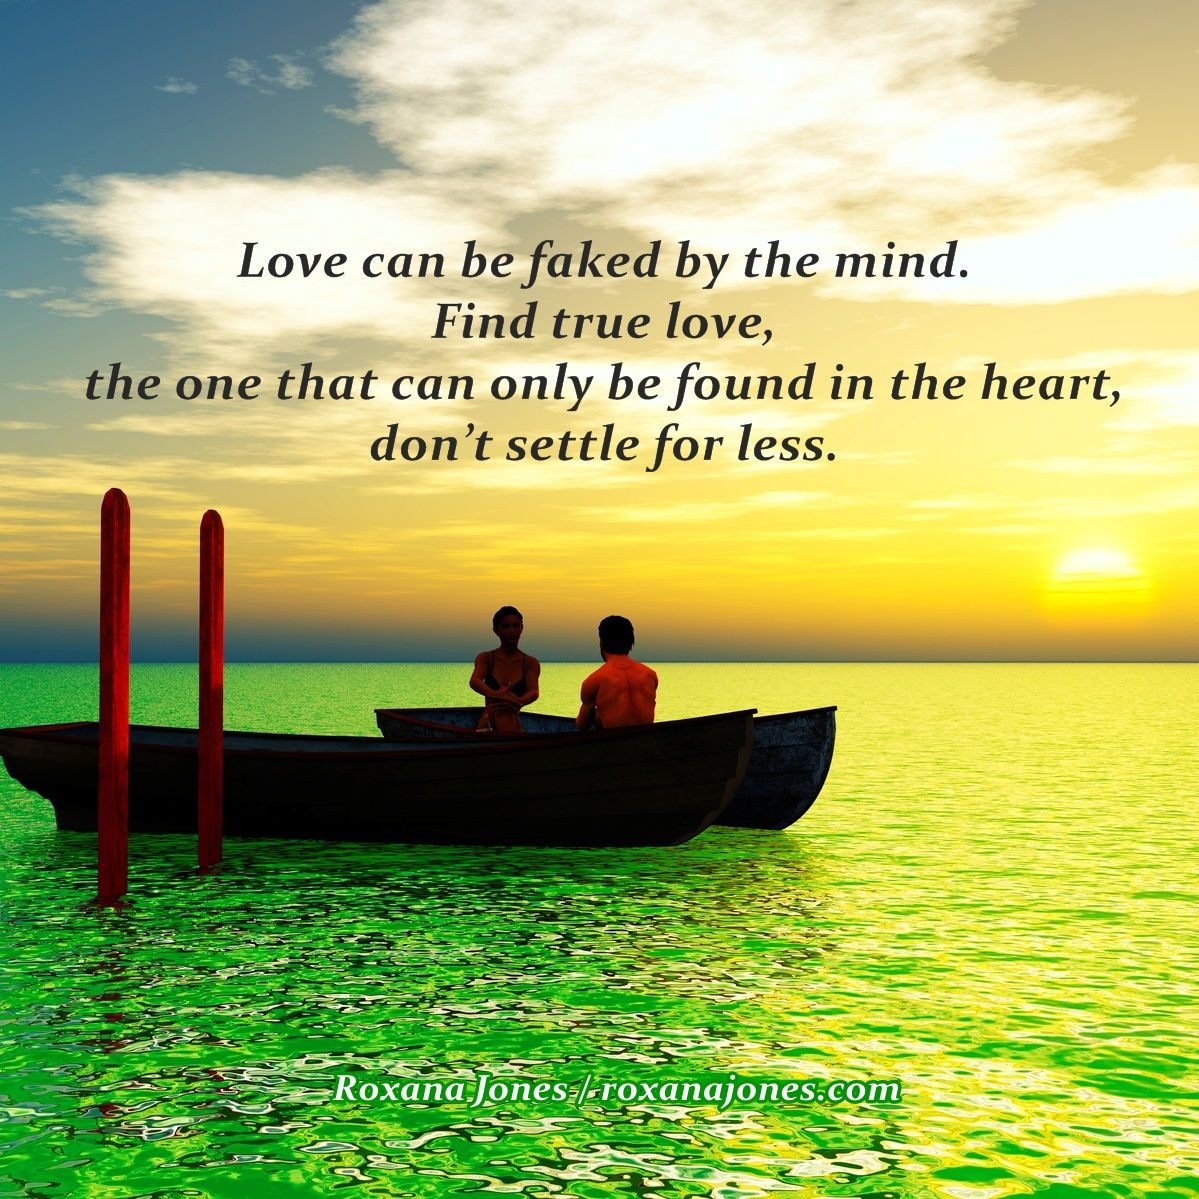 Found True Love Quotes: Find True Love, It Can Only Be Found In The Heart, Don't